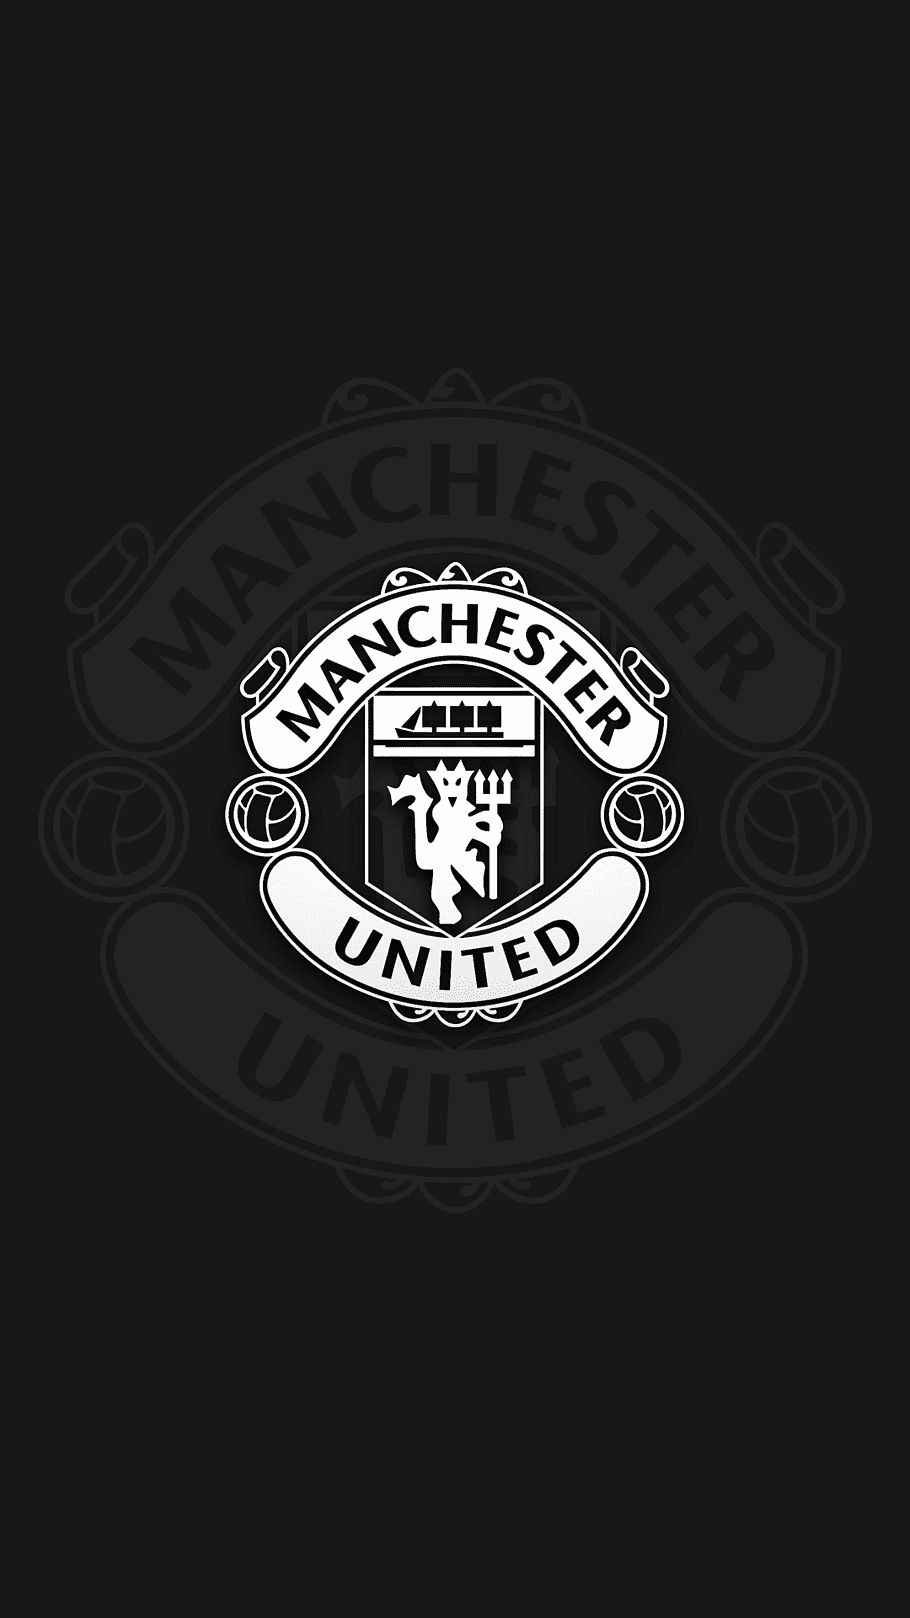 Manchester United Macbook Wallpaper Hd Football In 2020 Manchester United Wallpaper Manchester United Logo Manchester United Wallpapers Iphone